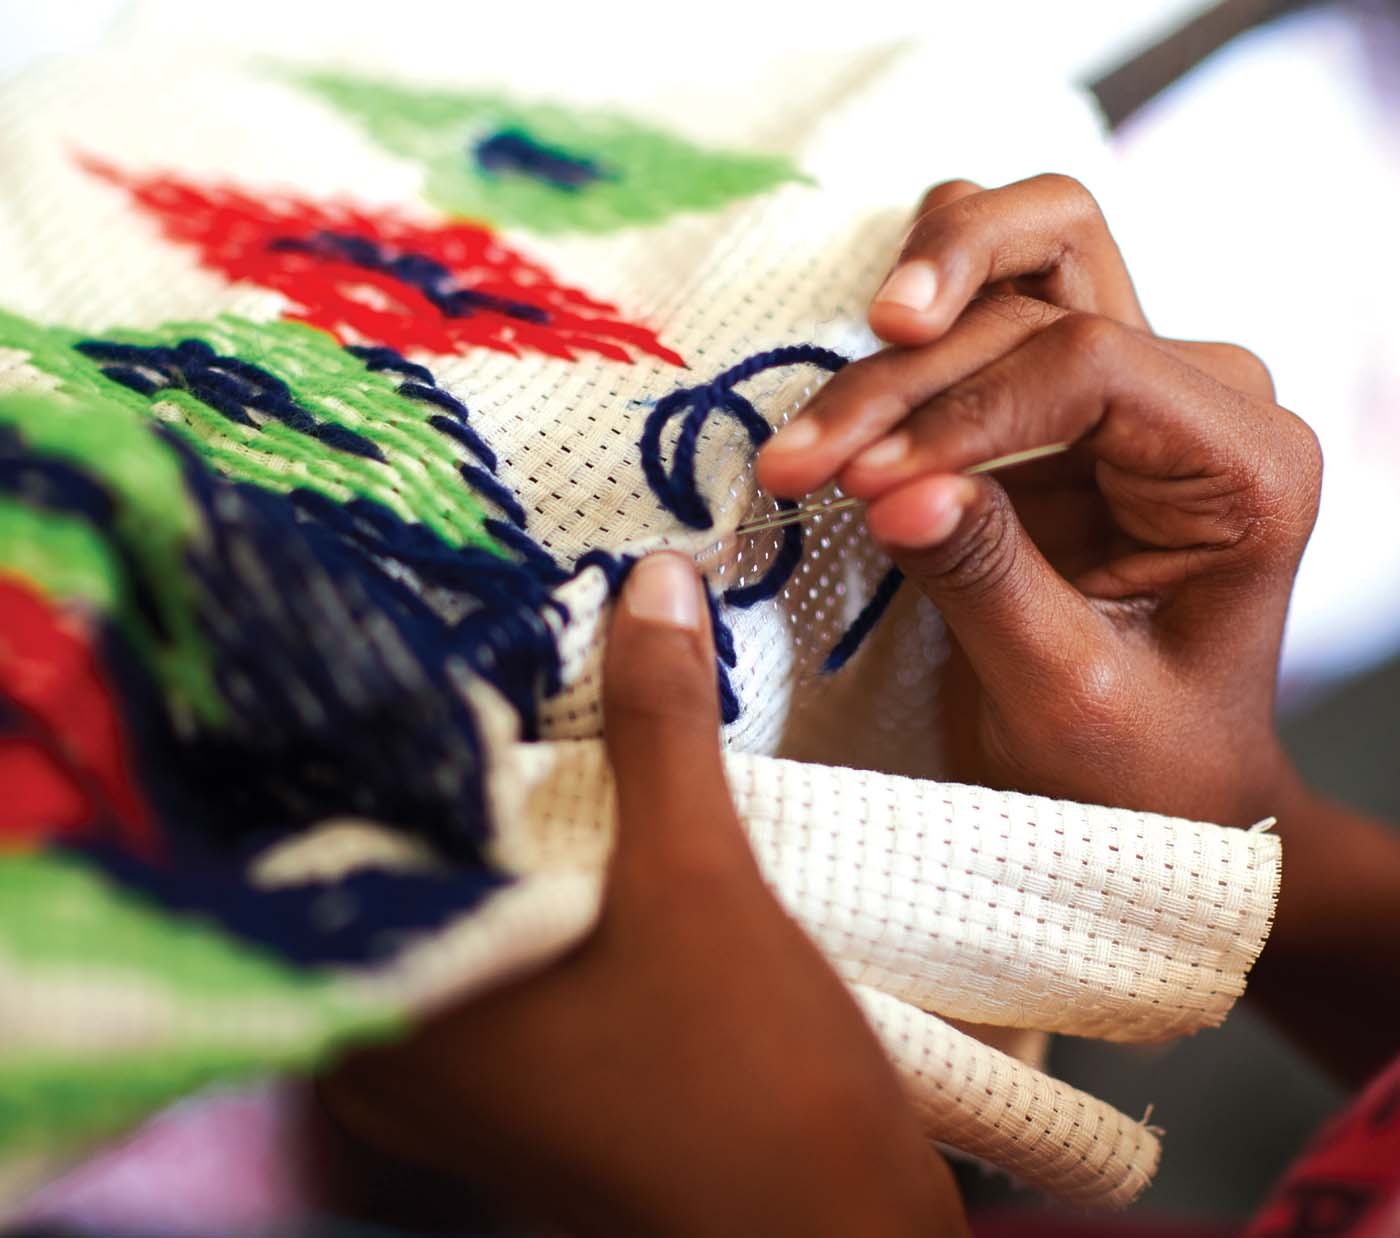 MJF Kids are part of daily sewing classes at the MJF Centre in Moratuwa. On any given day, several MJF Kids are busy creating beautiful designs with coloured thread and ribbons on pillow cases and cushion covers, putting together wall hangings or just learning basic stitches.